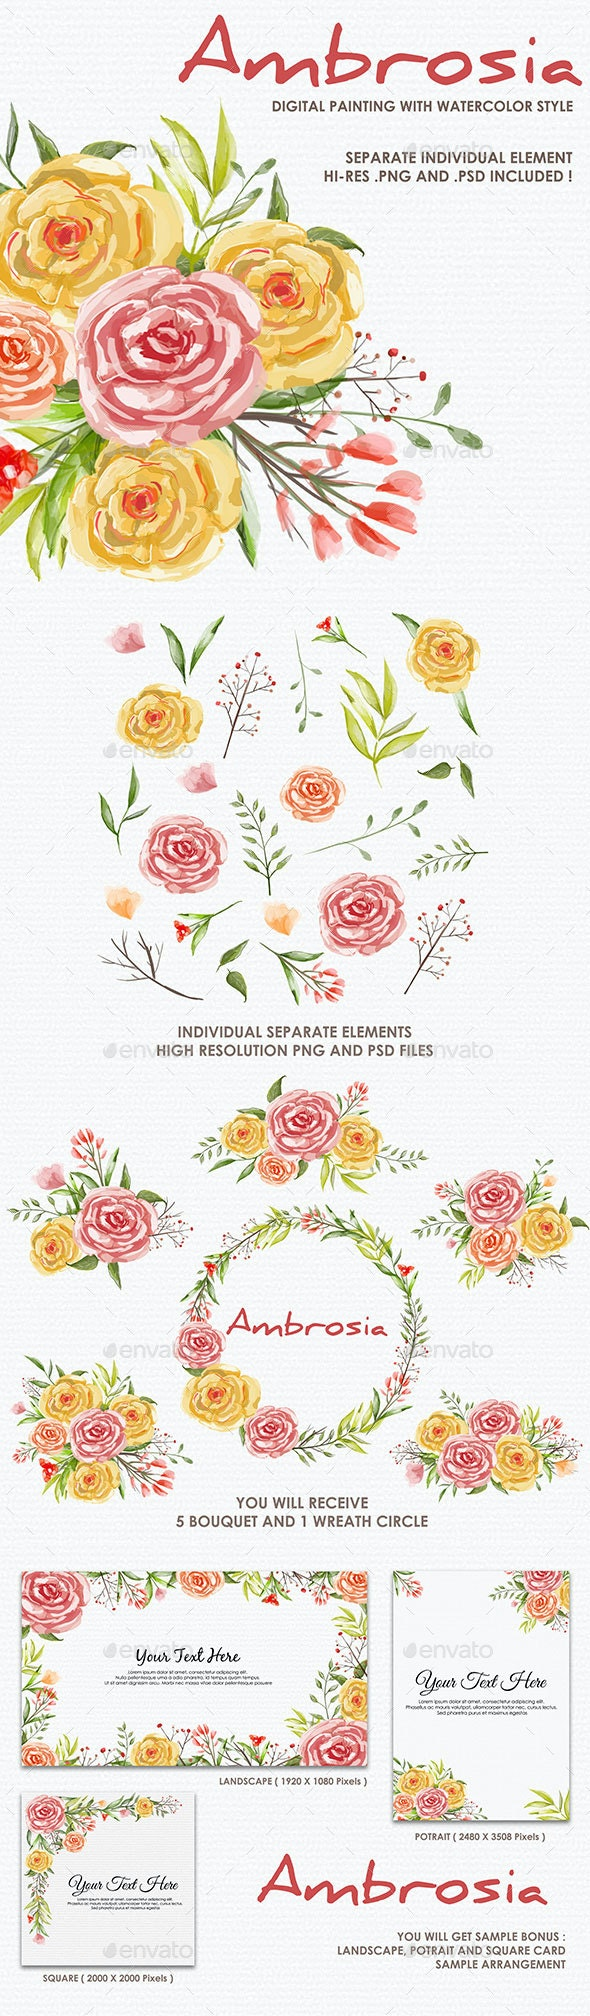 Ambrosia - Watercolor Digital Painting Floral Flowers Style - Decorative Graphics